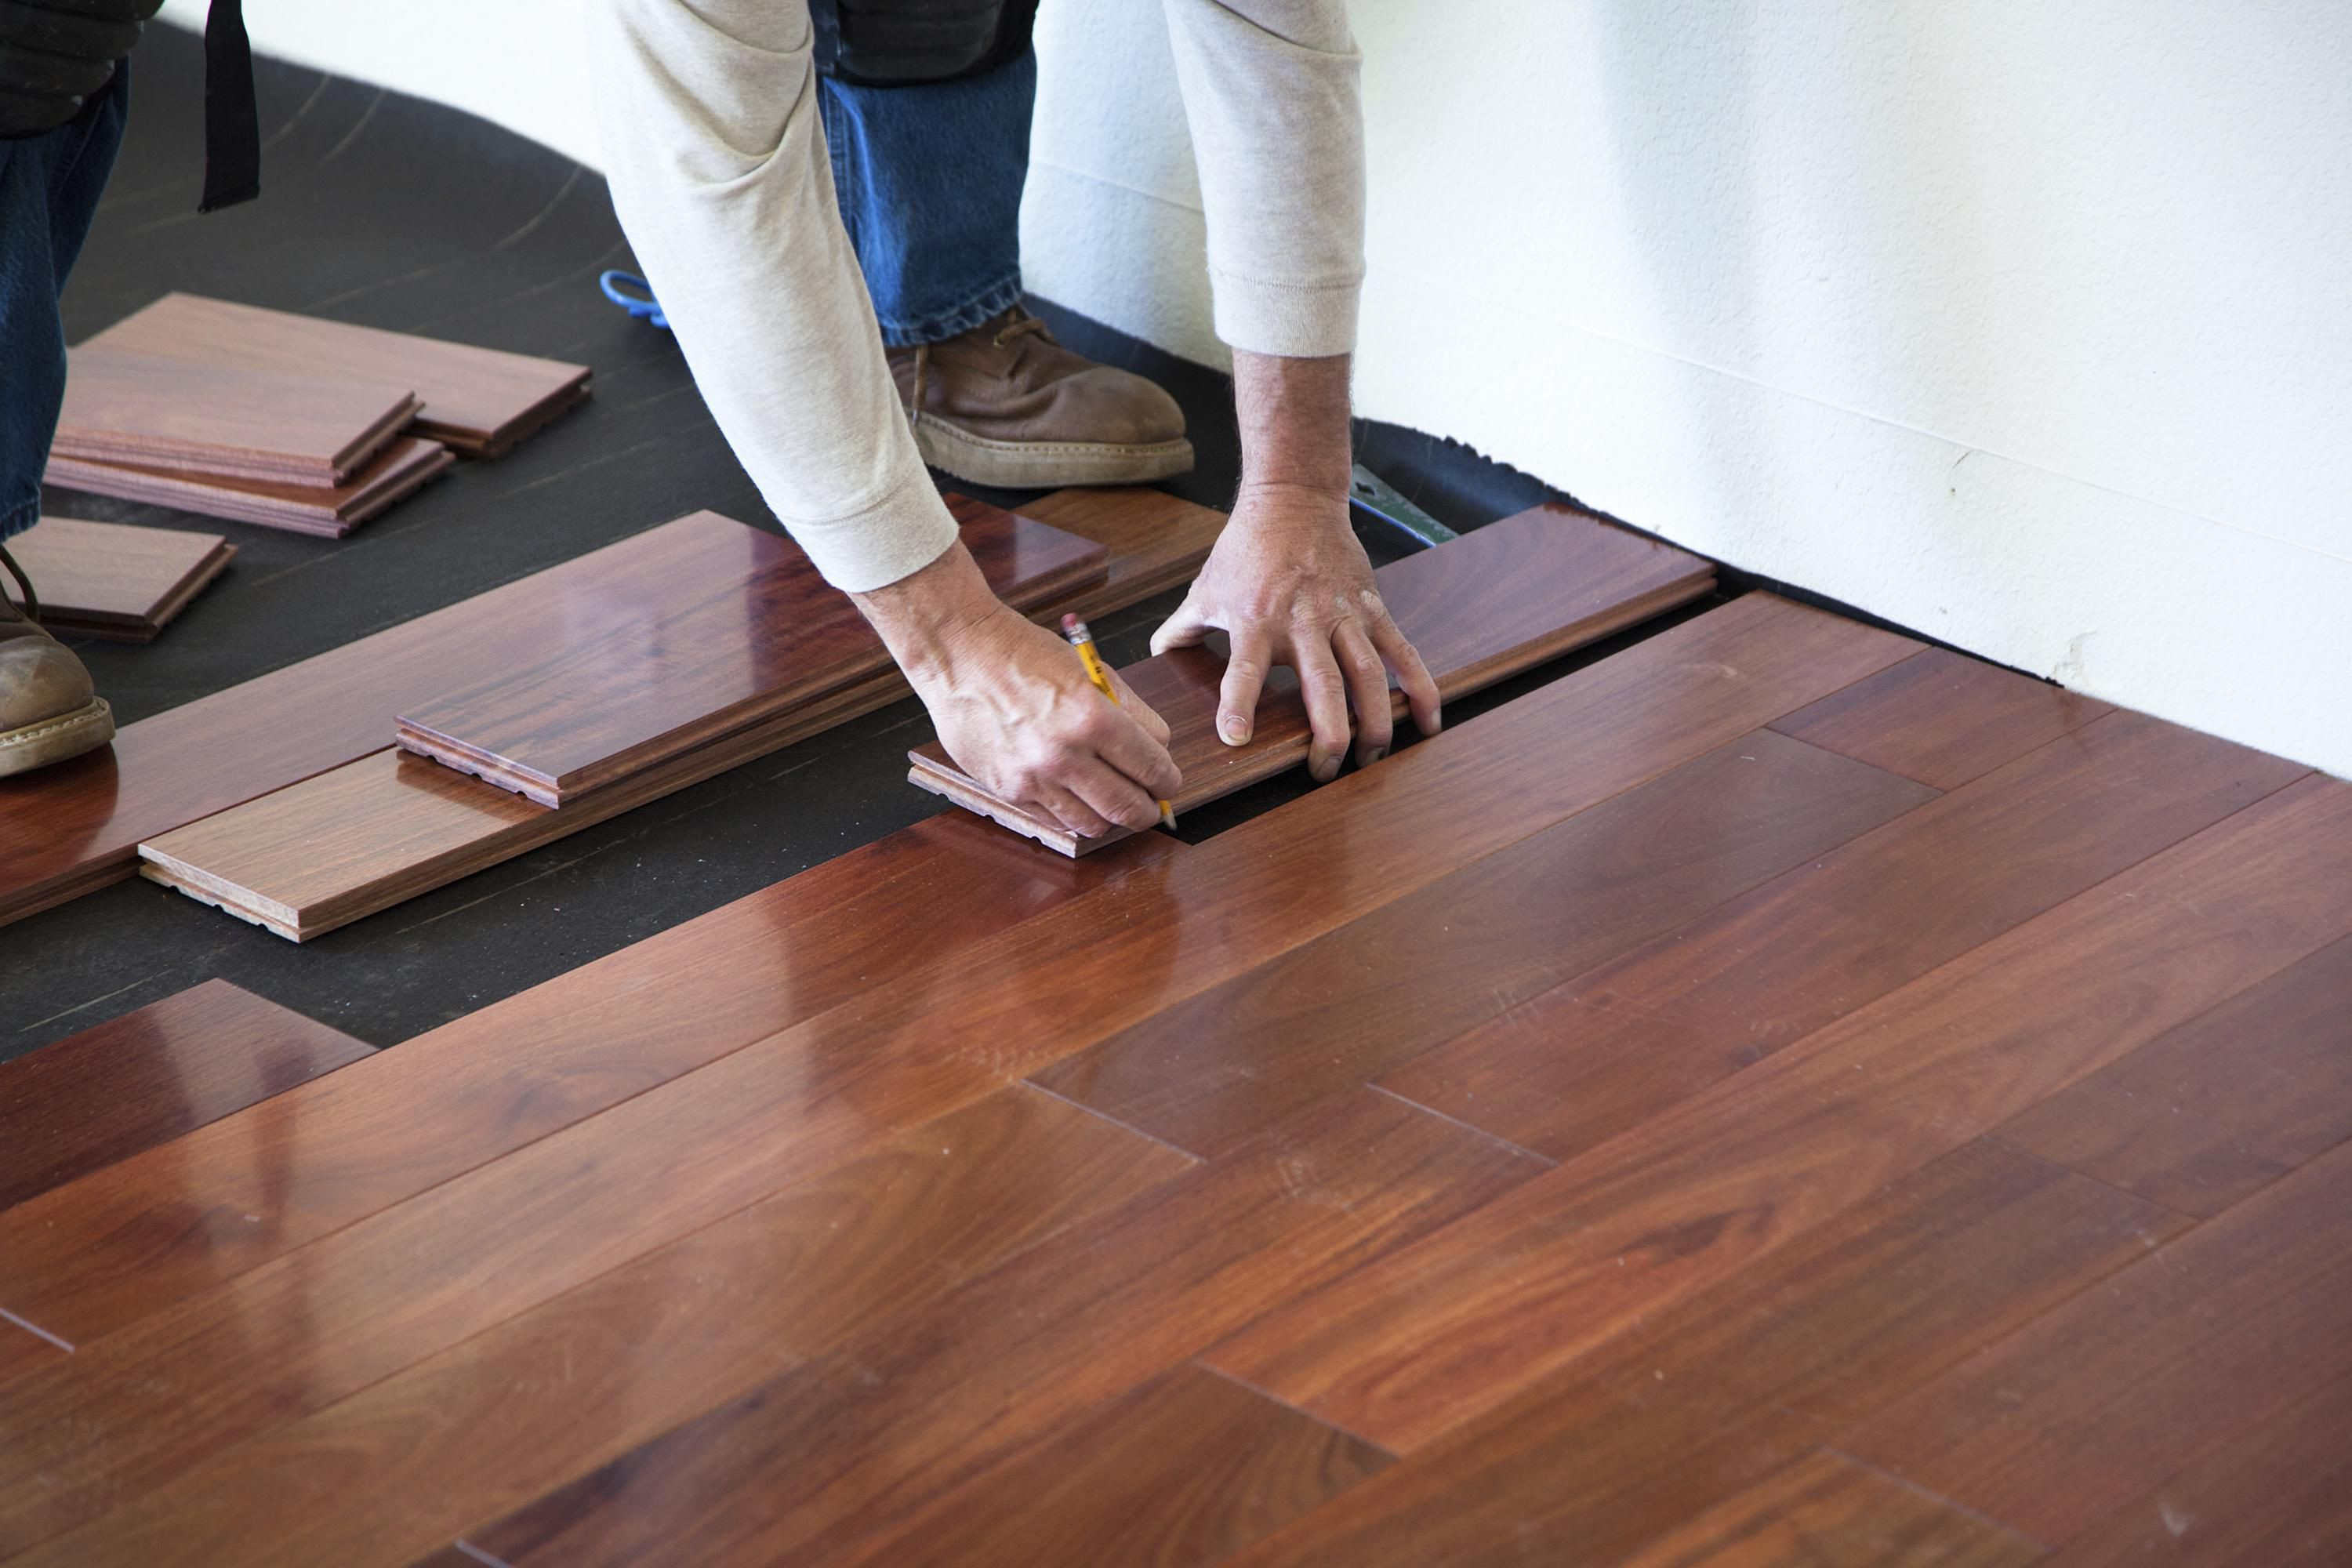 hardwood flooring contractors near me of this is how much hardwood flooring to order for 170040982 56a49f213df78cf772834e21